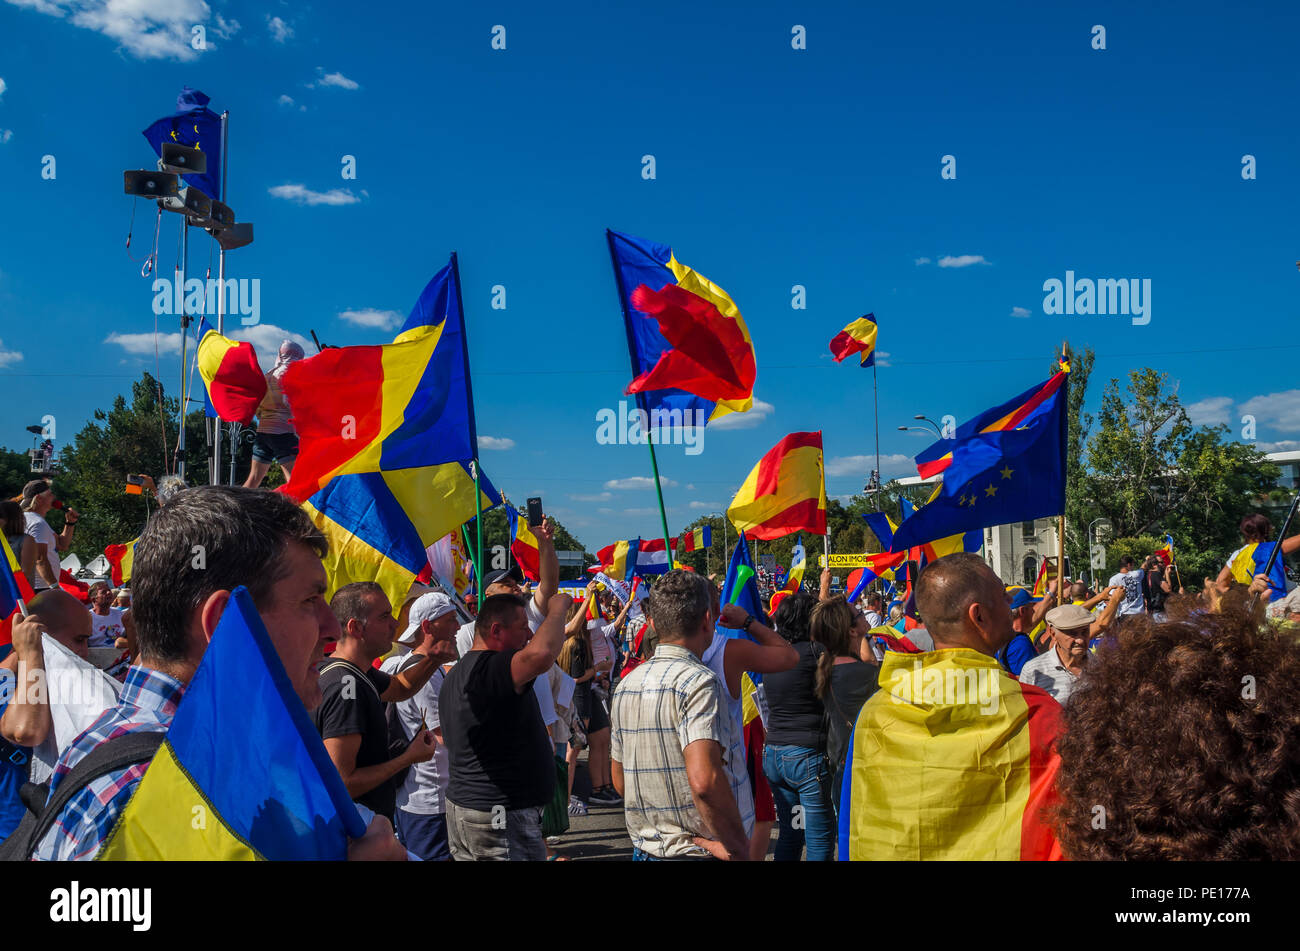 Bucharest, Romania - August 10, 2018: Anti-government protesters in Bucharest, Romania. Stock Photo